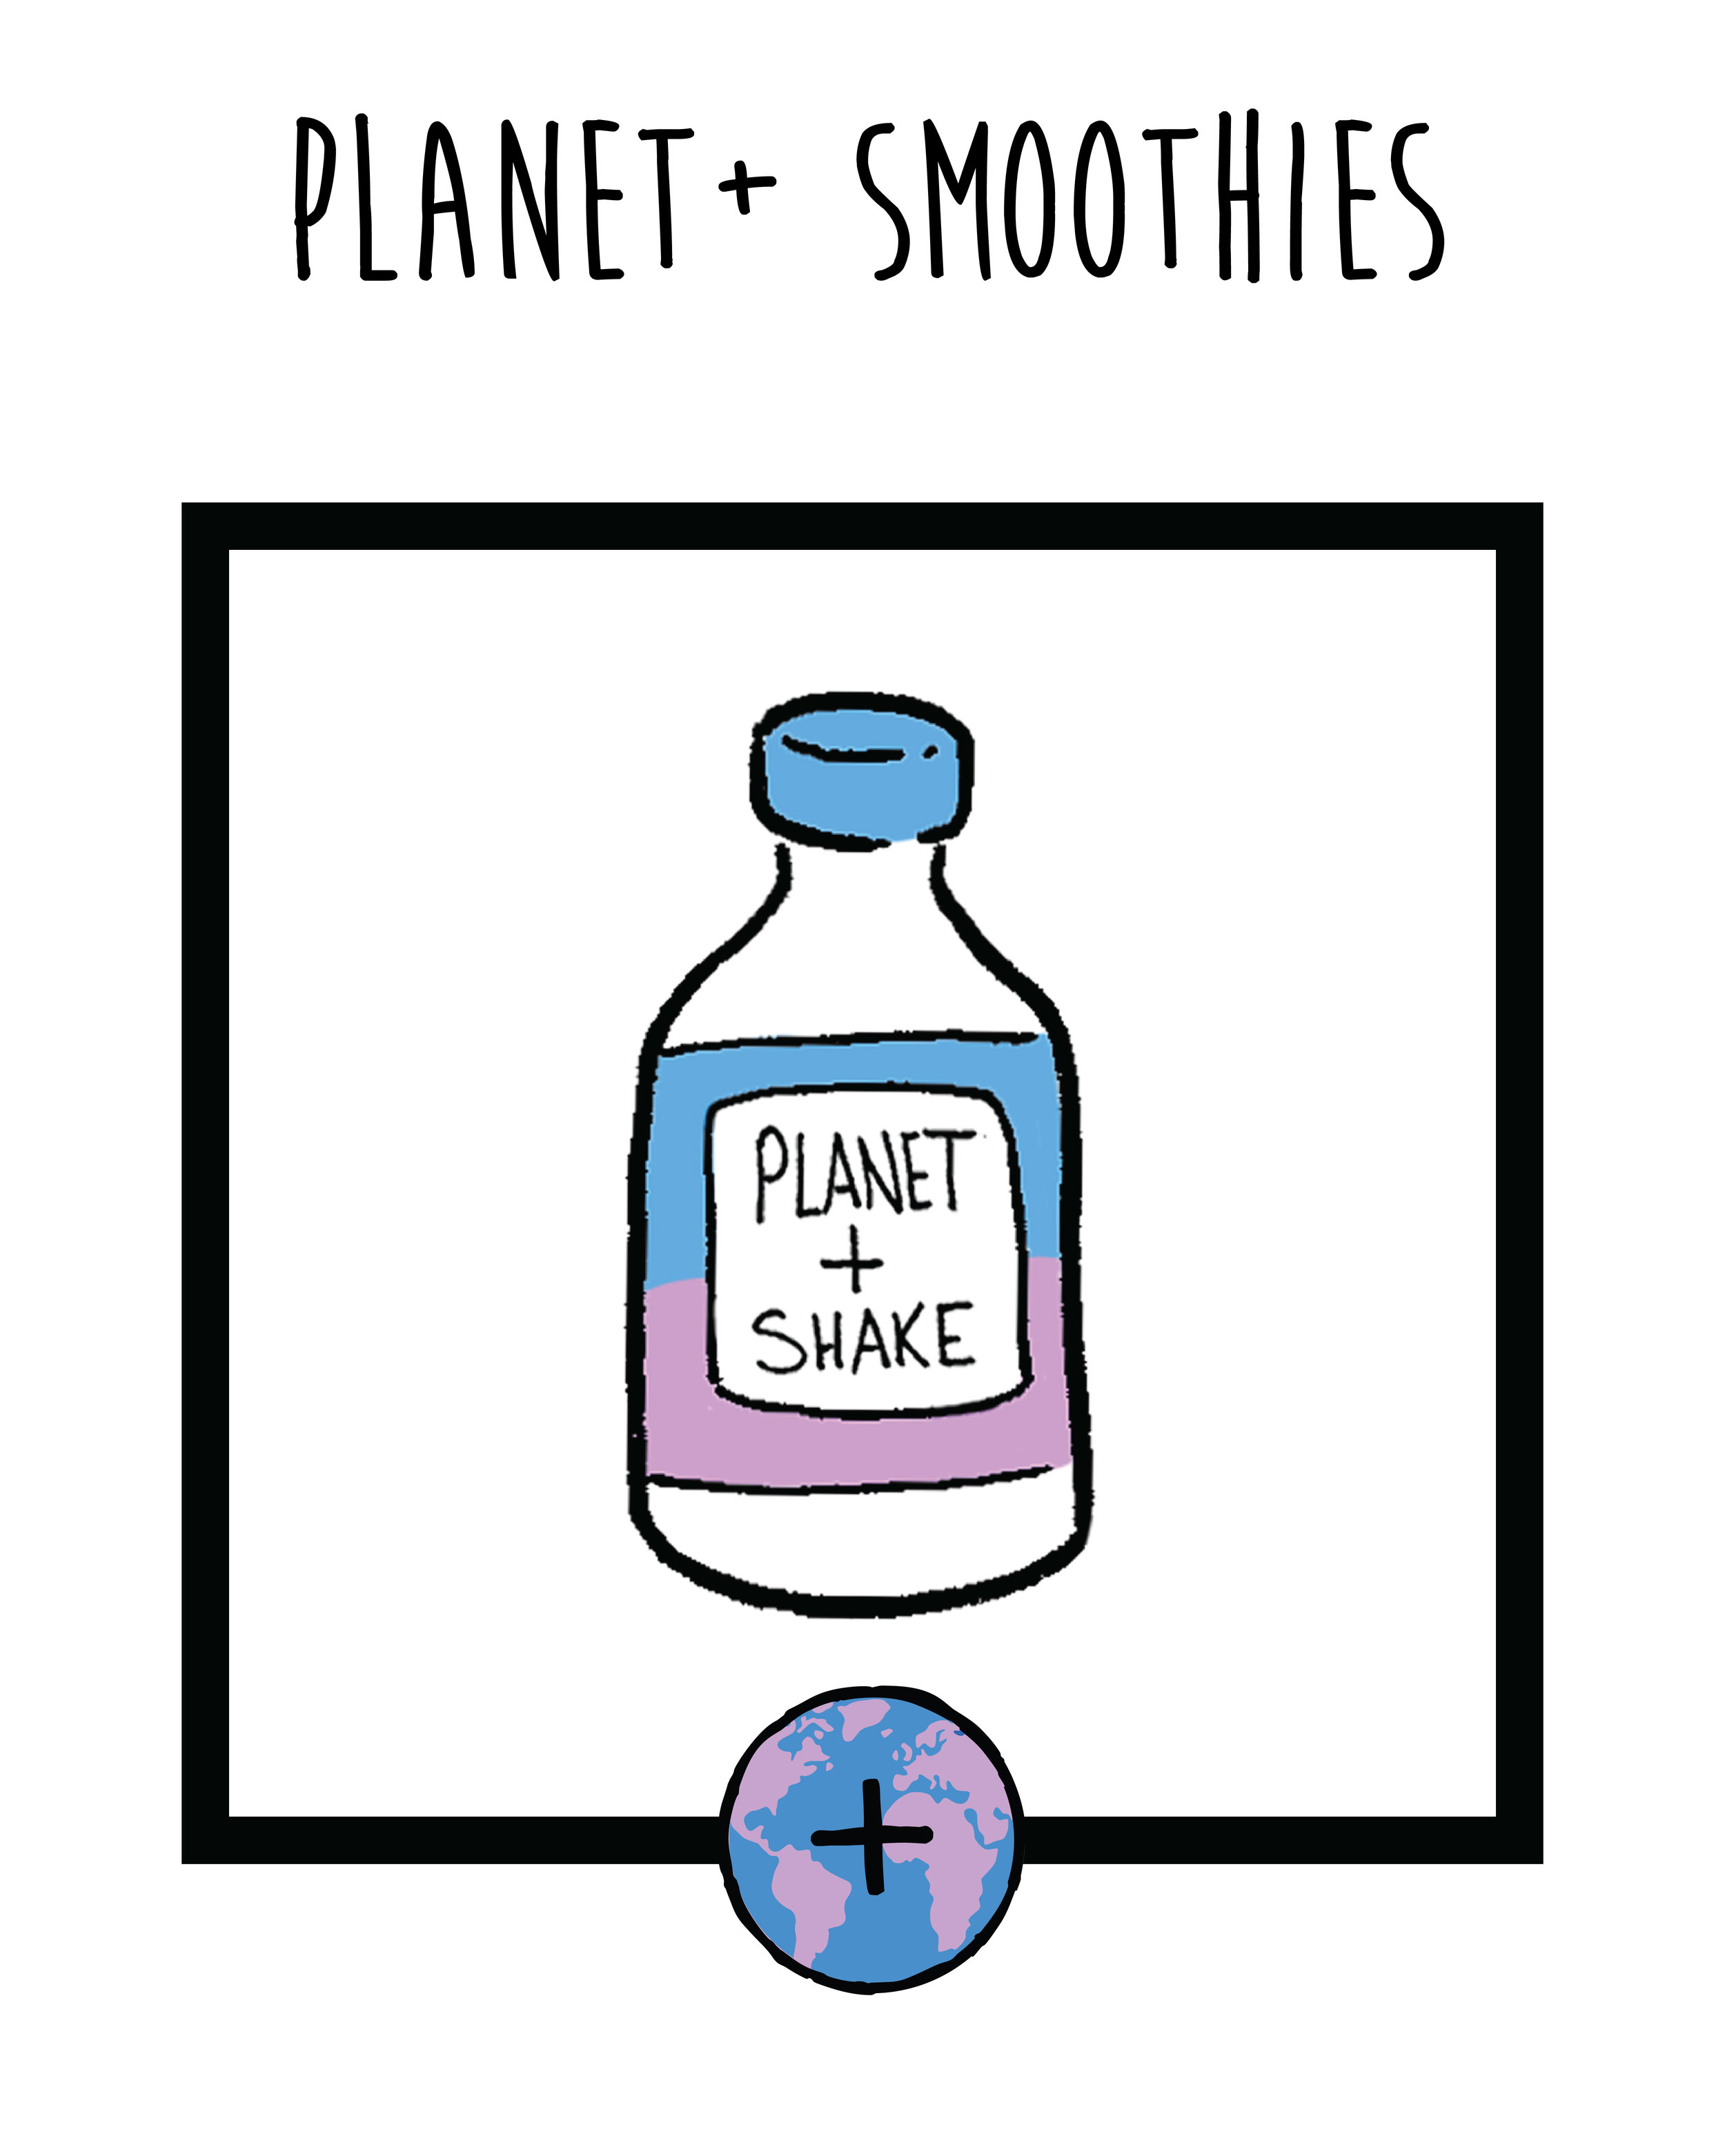 planet+Smoothie.jpg